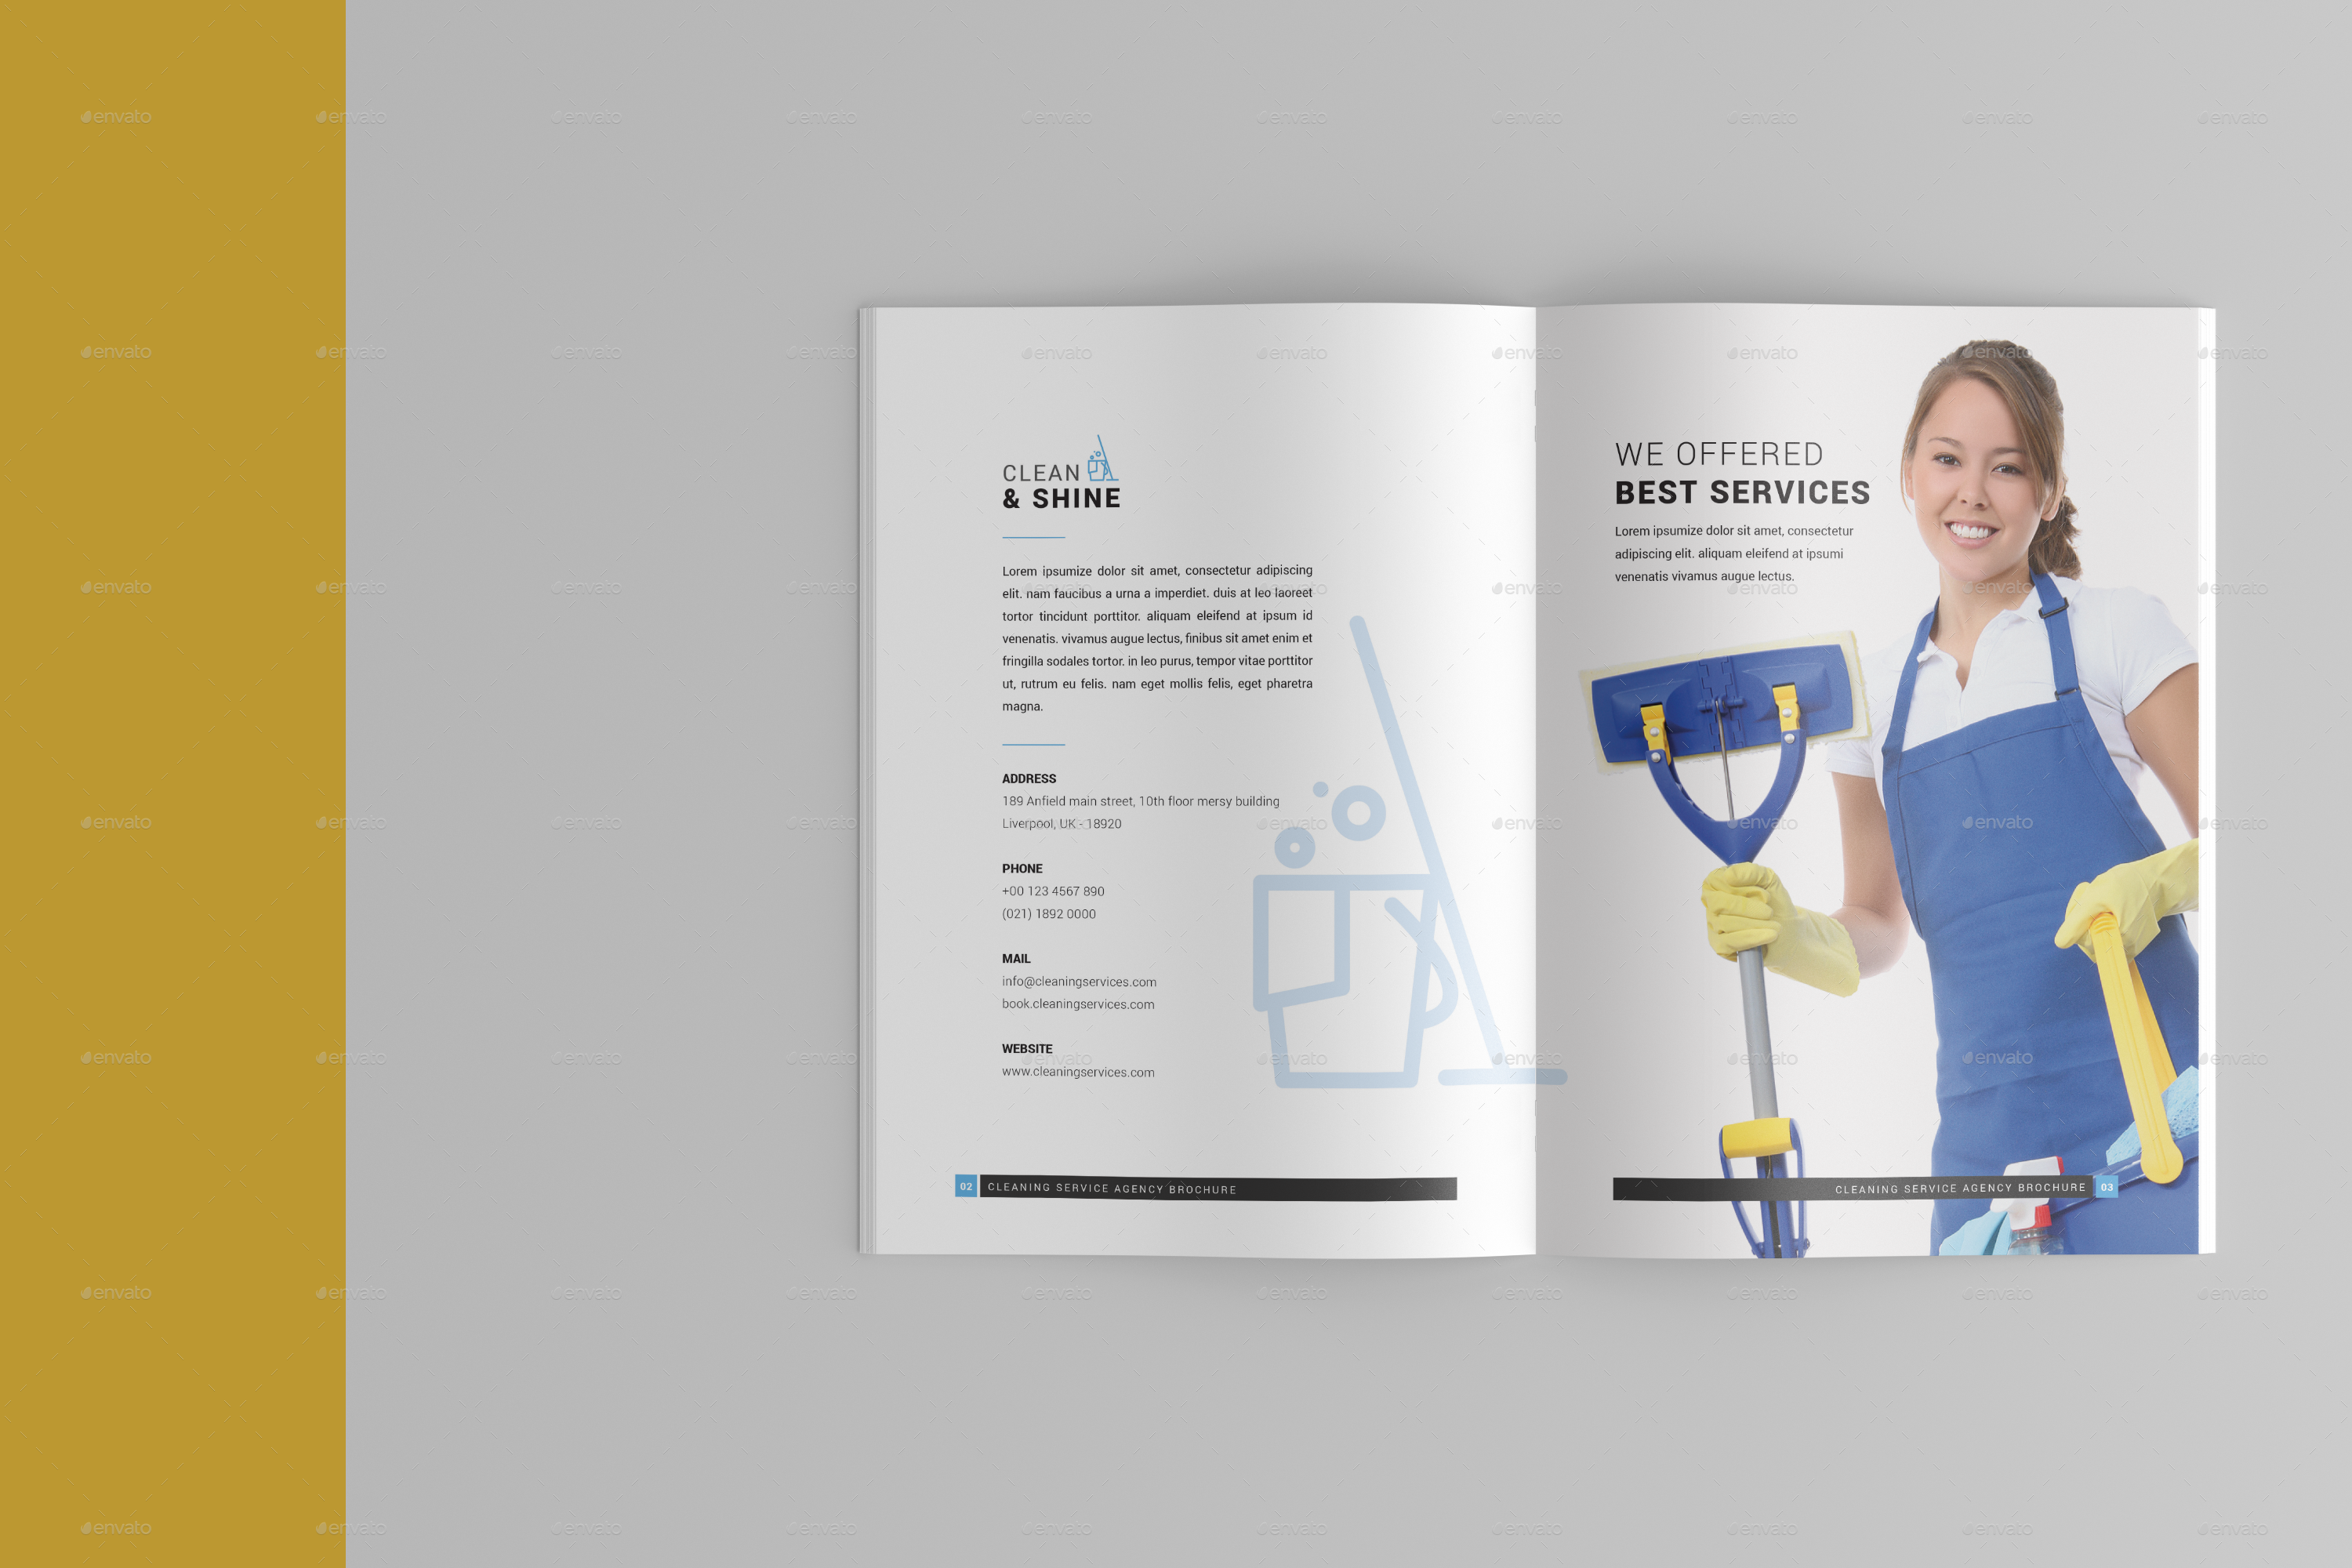 Cleaning Services Brochure Template by one_graphics | GraphicRiver